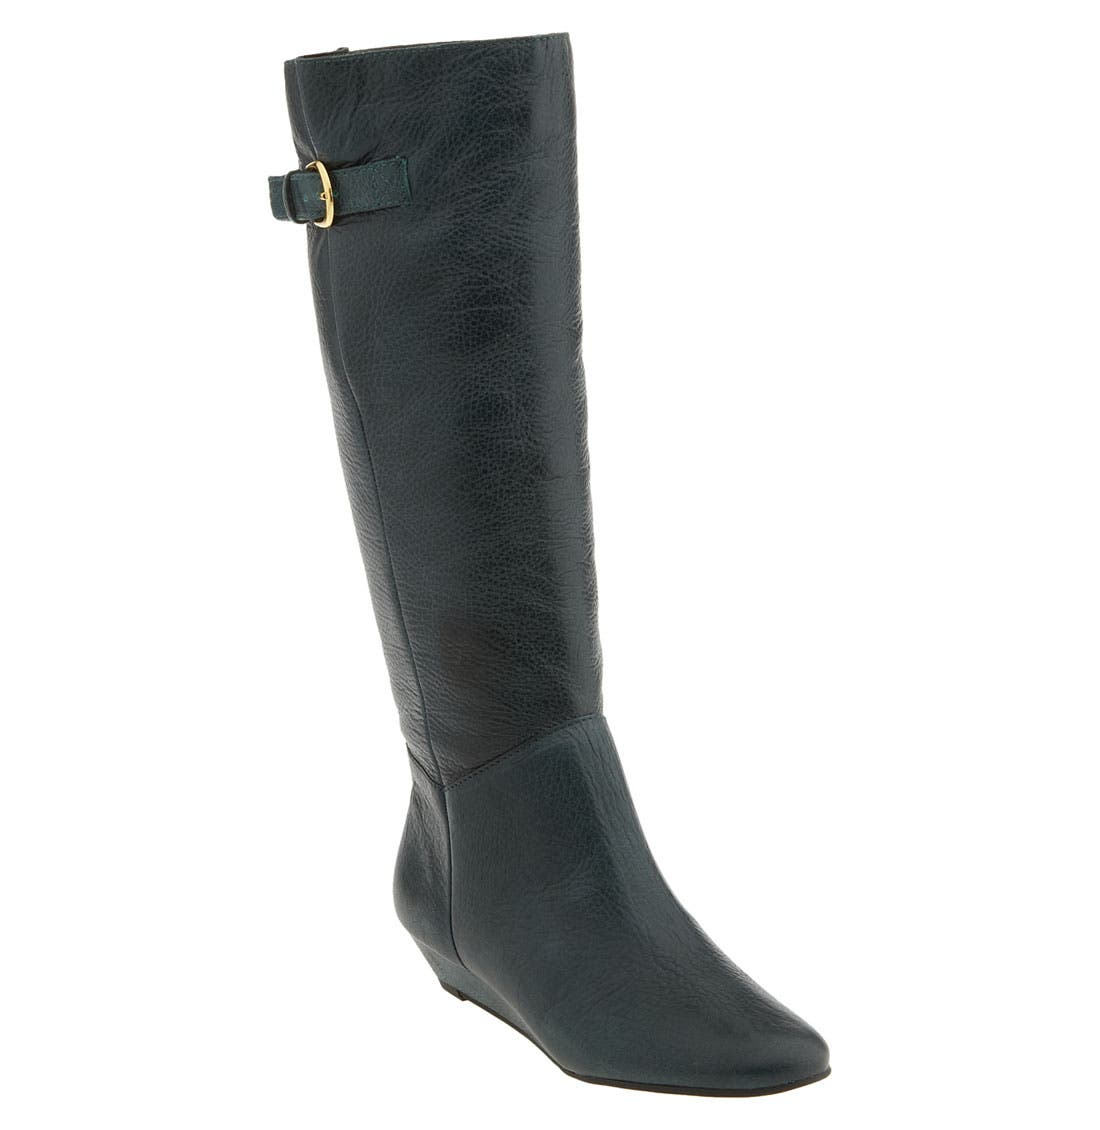 Main Image - Steven by Steve Madden 'Intyce' Boot